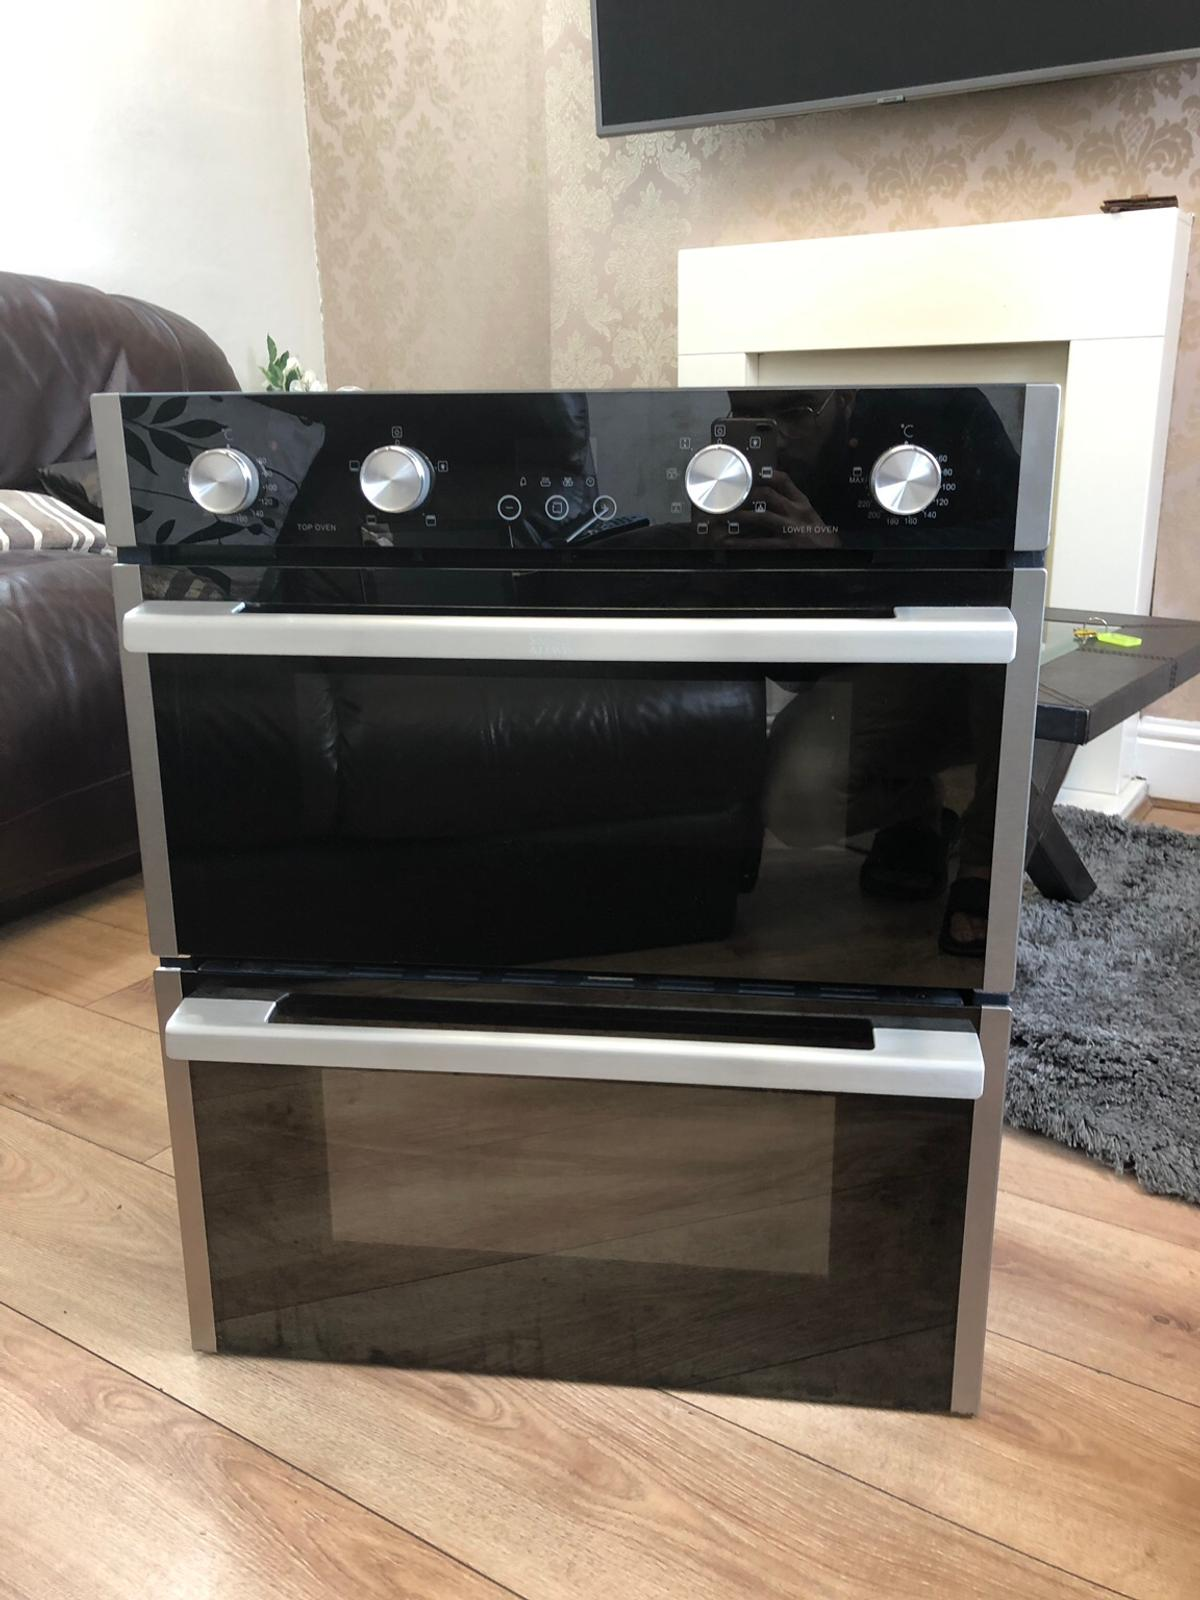 Cooke Lewis Duov72cl Electric Double Oven In Bb10 Burnley